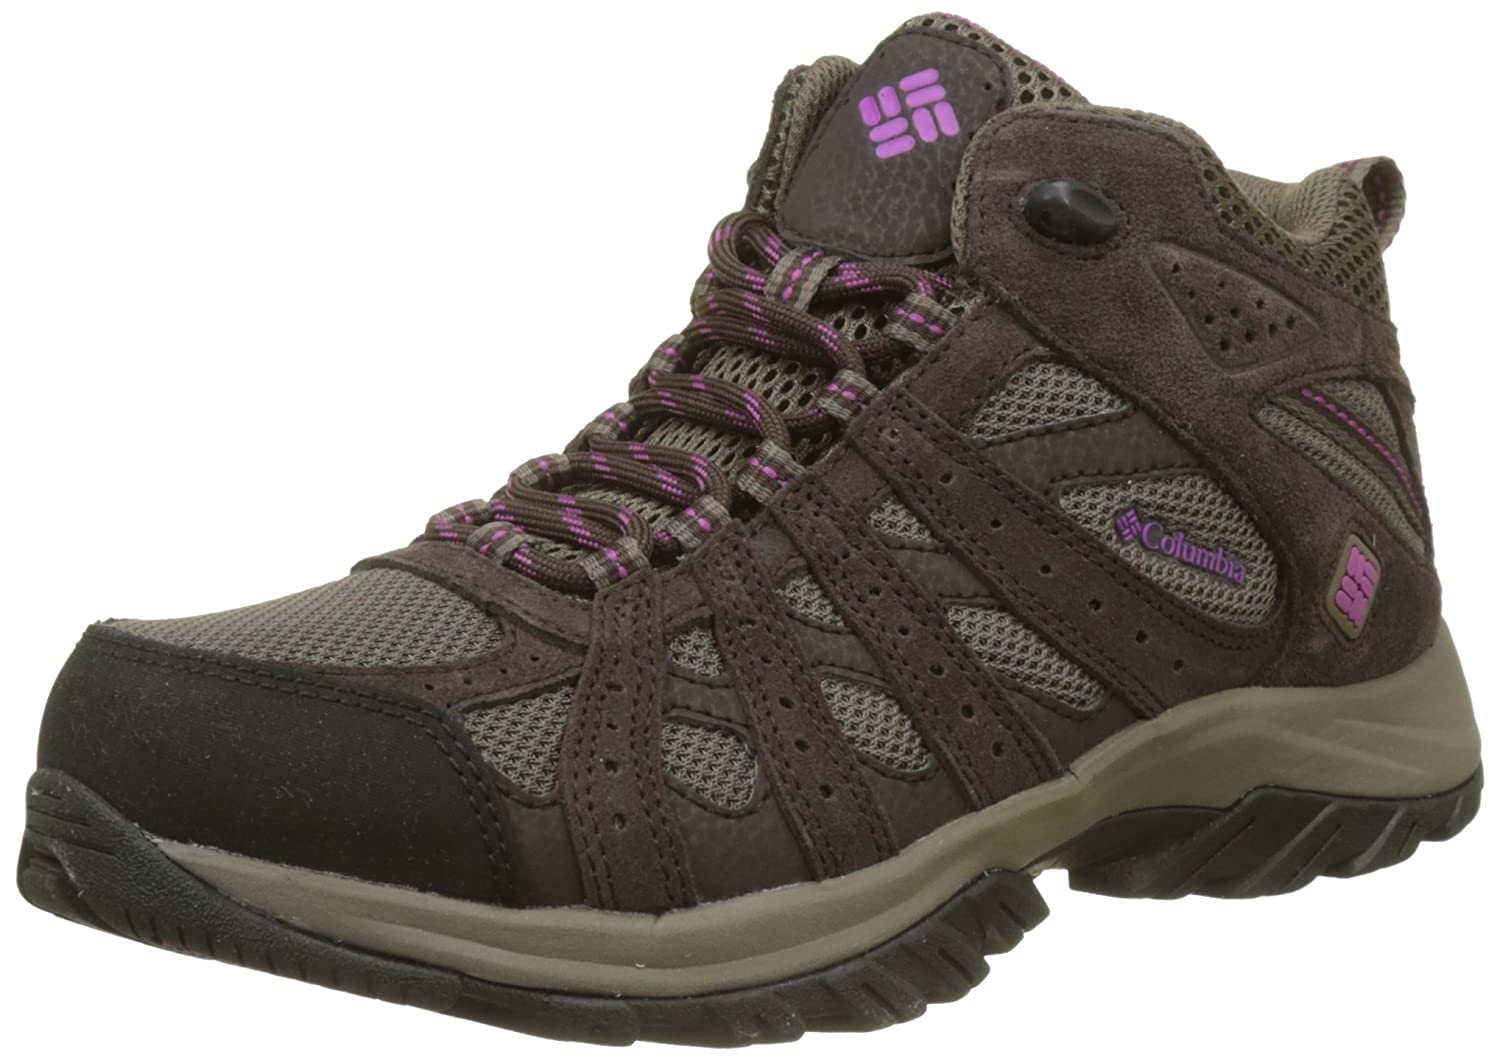 COLUMBIA Damen Wanderschuhe, Wasserdicht, CANYON POINT MID